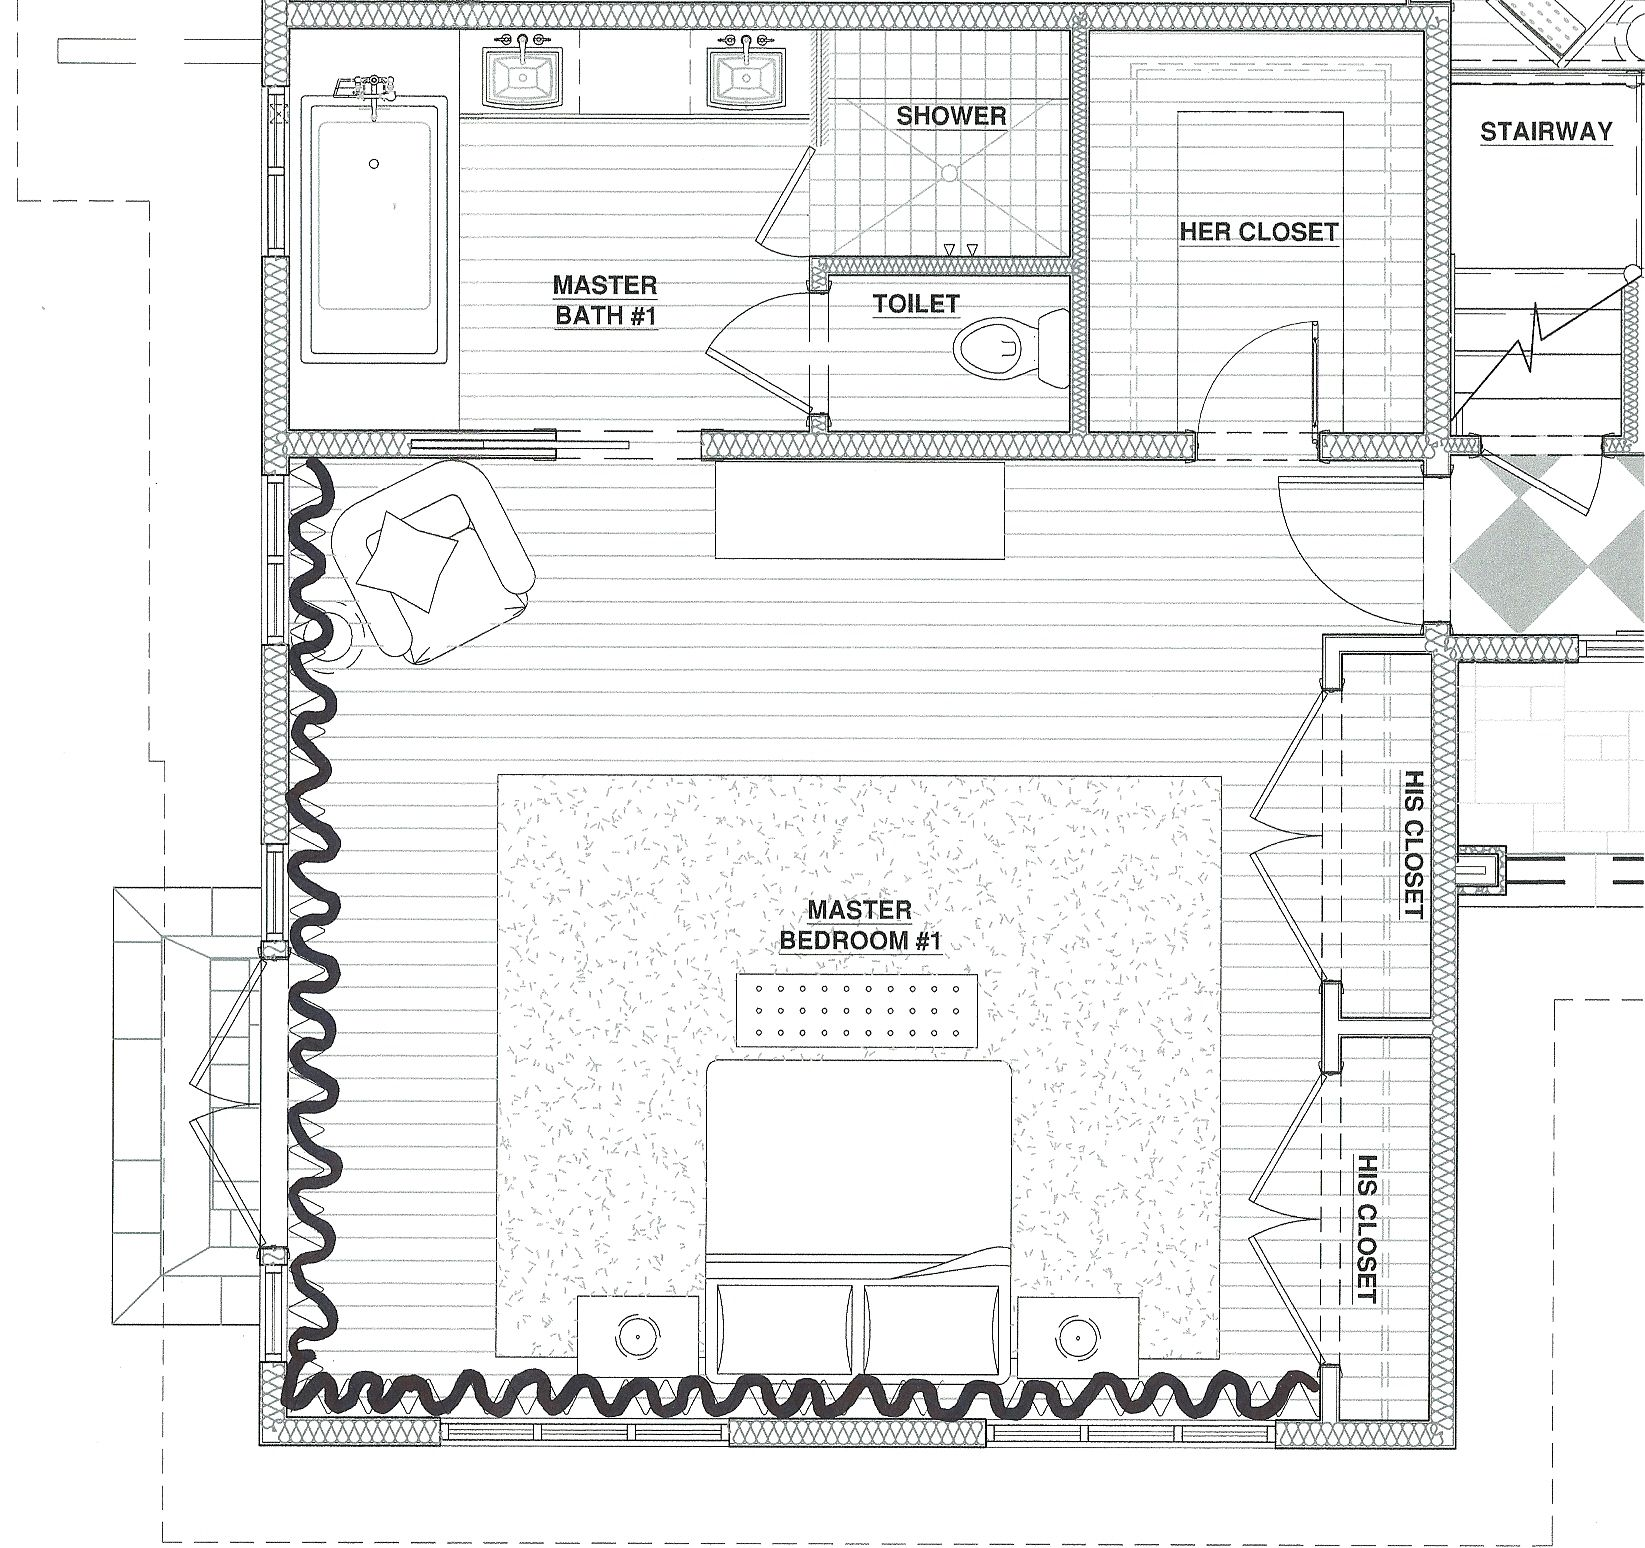 Master bedroom drawing - Master Bedroom Floor Plans Picture Gallery Of The Master Bedroom Floor Plan Ideas